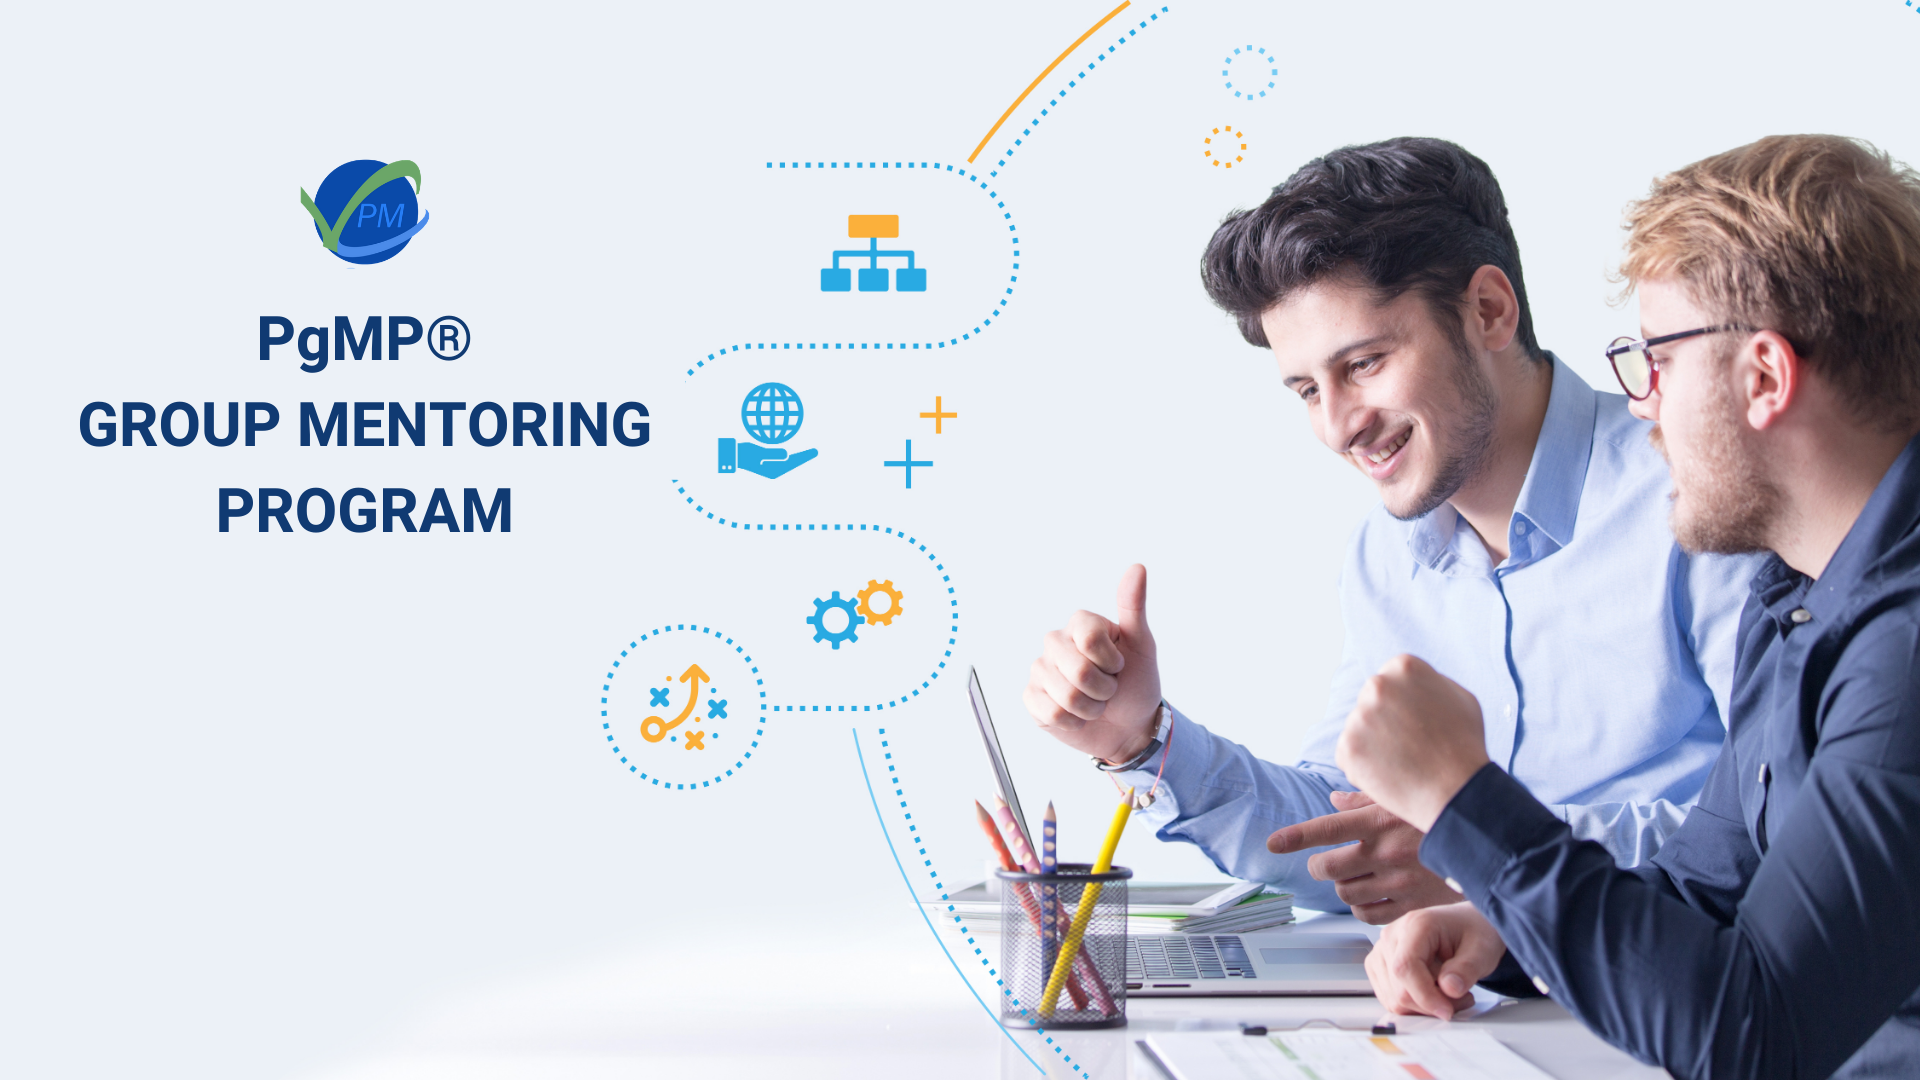 PgMP® Group Mentoring Program, May 19, 2021, 9 - 11 AM (USA PDT) / 10 AM - 12 PM (MDT) / 11 AM - 1 PM (USA CDT) / 12 - 2 PM (USA EDT) / 6 - 8 PM (CEST) / 7 - 9 PM (AST) / 8 - 10 PM (GST)